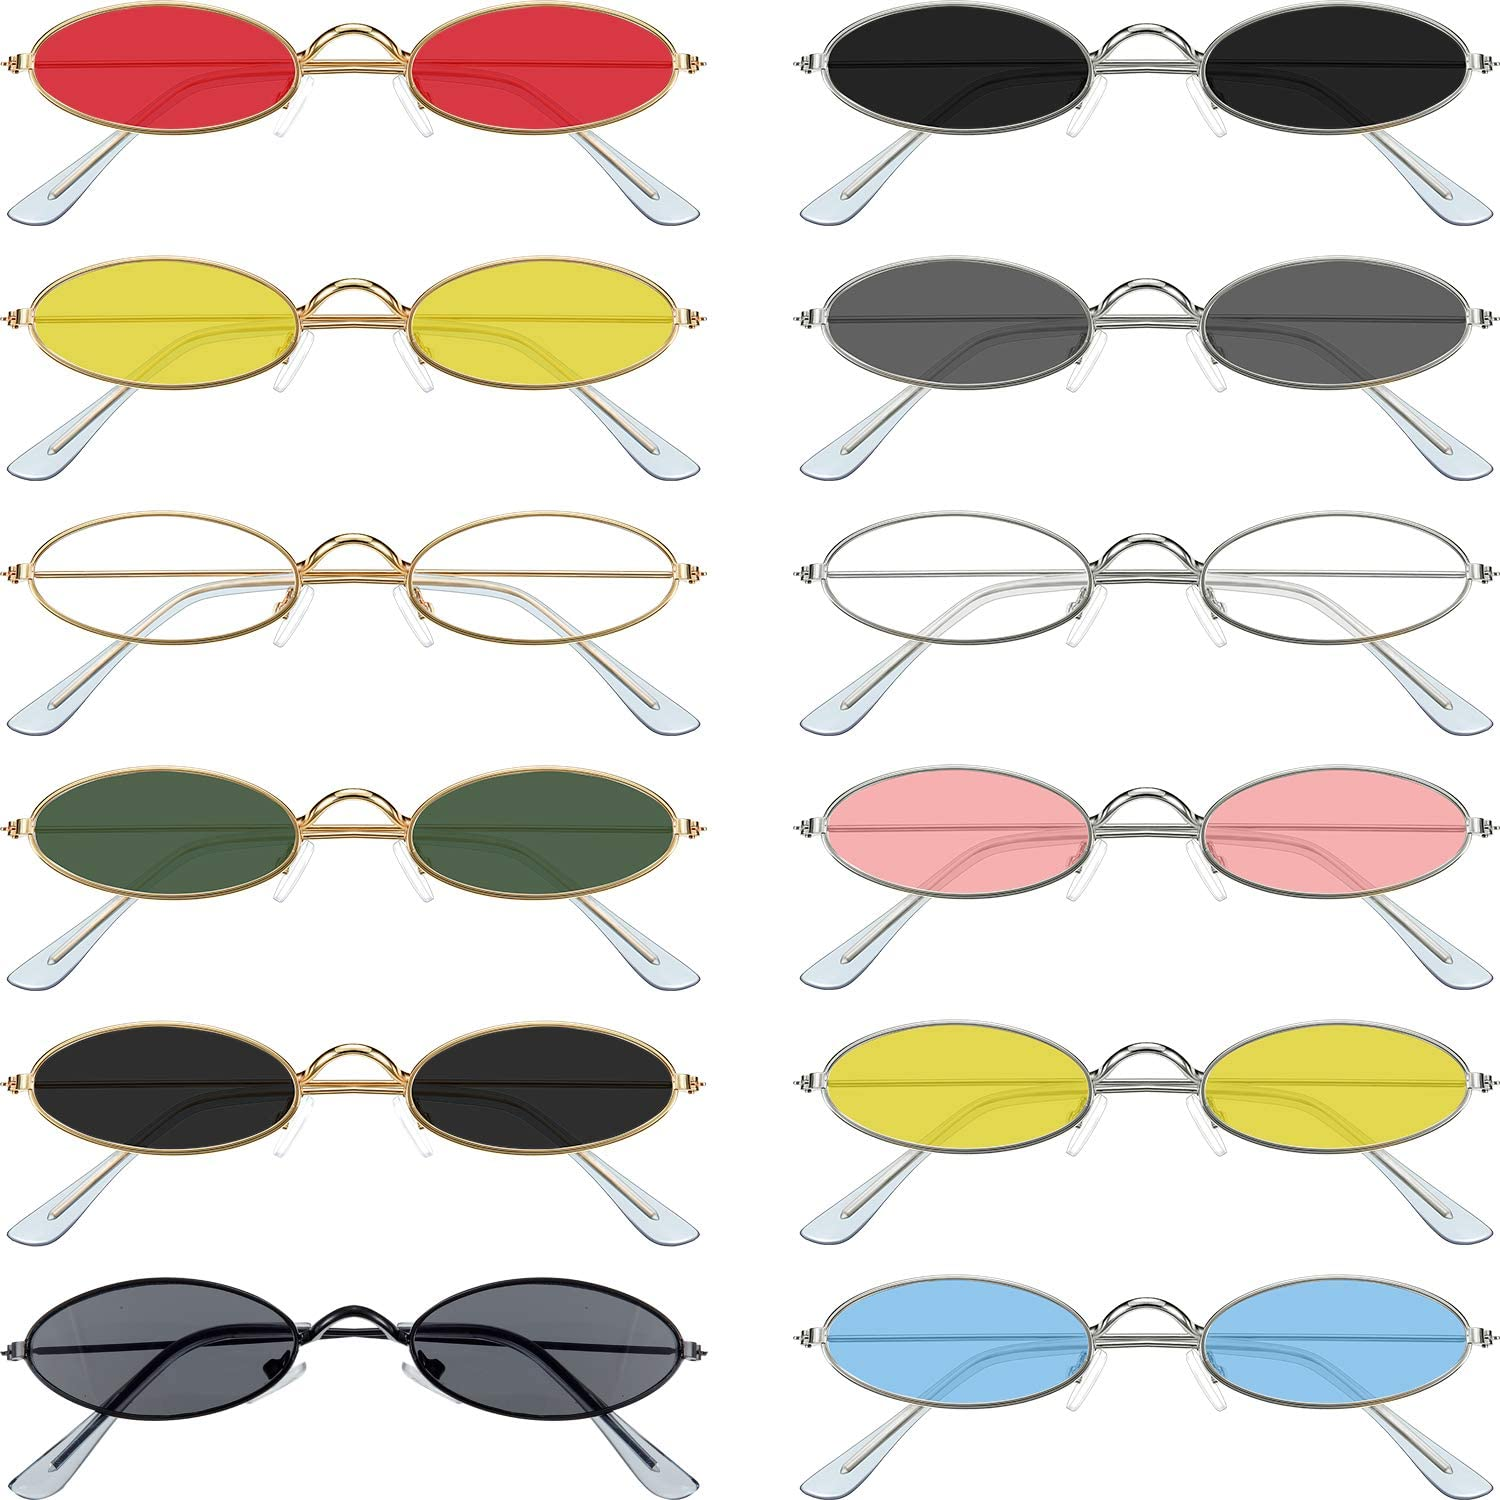 12 Pieces Vintage Oval Sunglasses Slender Metal Frame Oval Sunglasses Candy Colors for Man and Woman